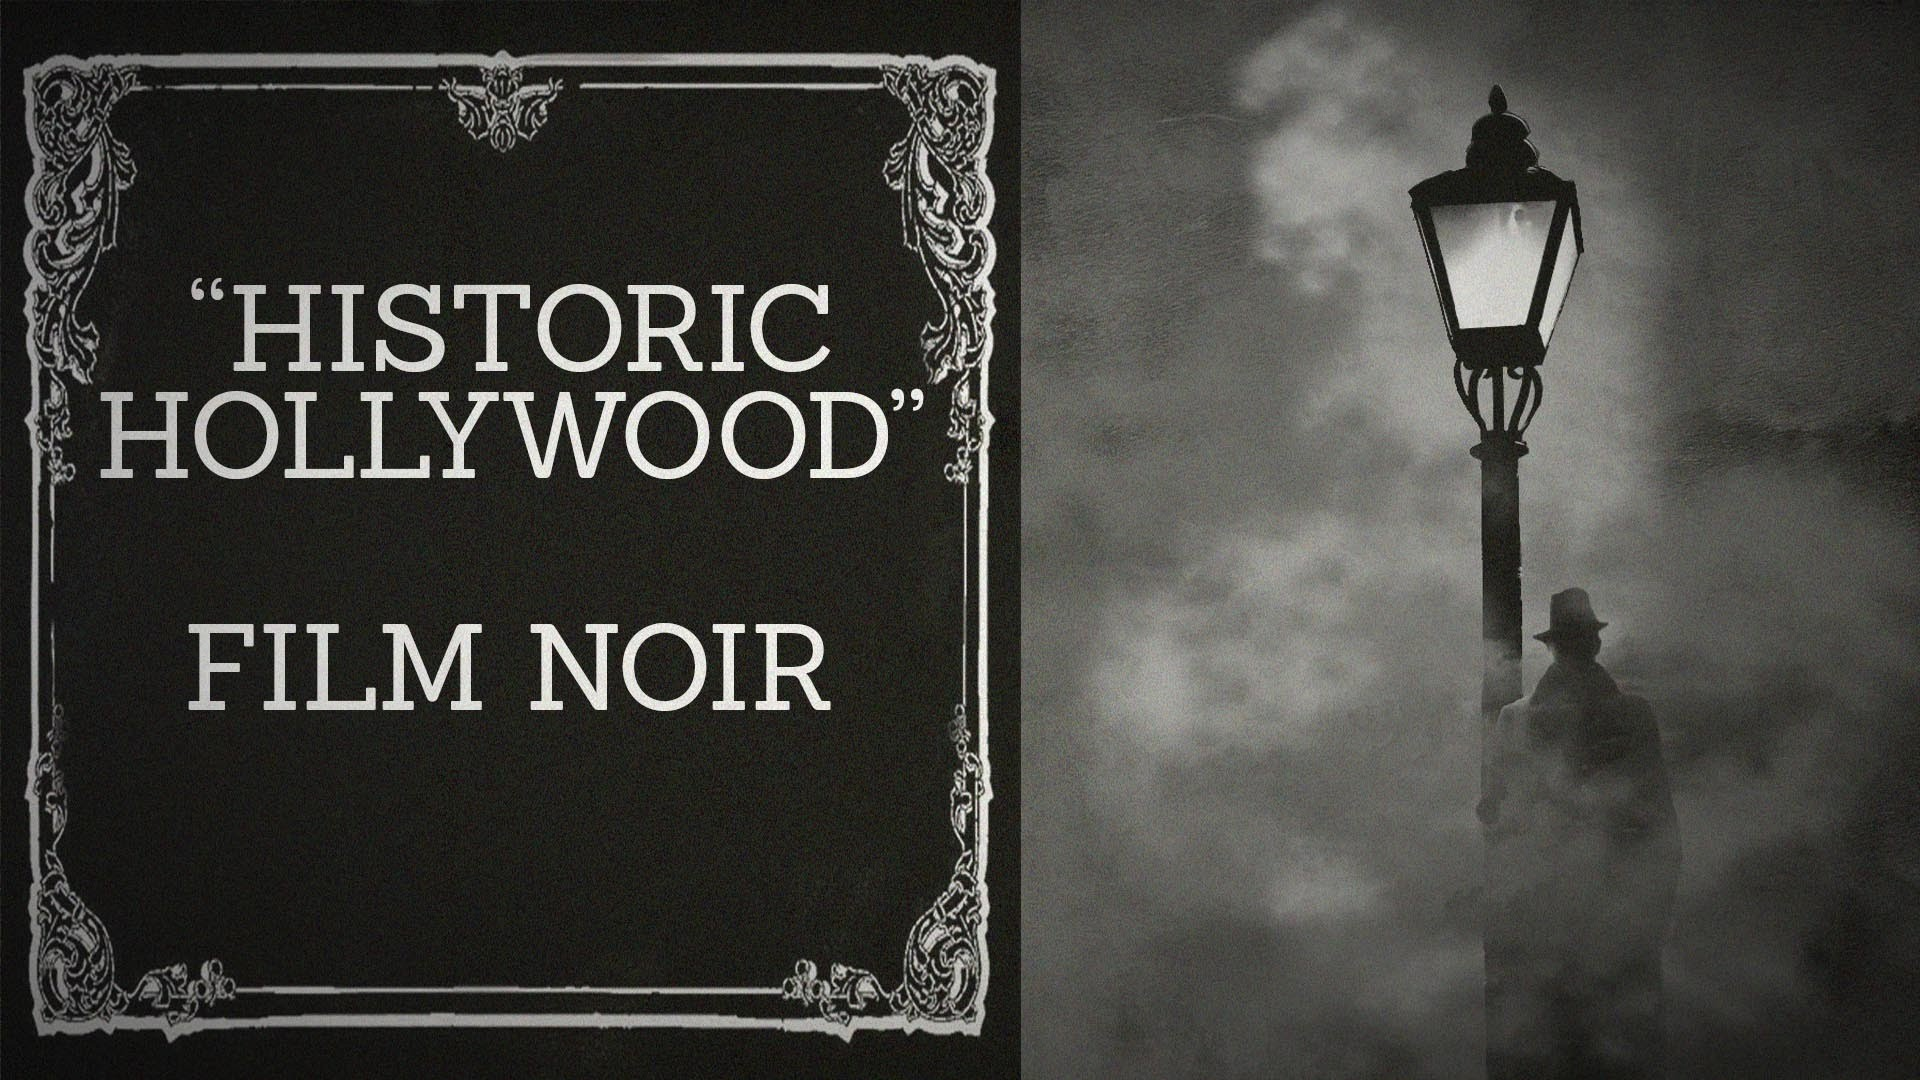 Film Noir Discussion pt. 1 – Historic Hollywood (November 29th, 2015)